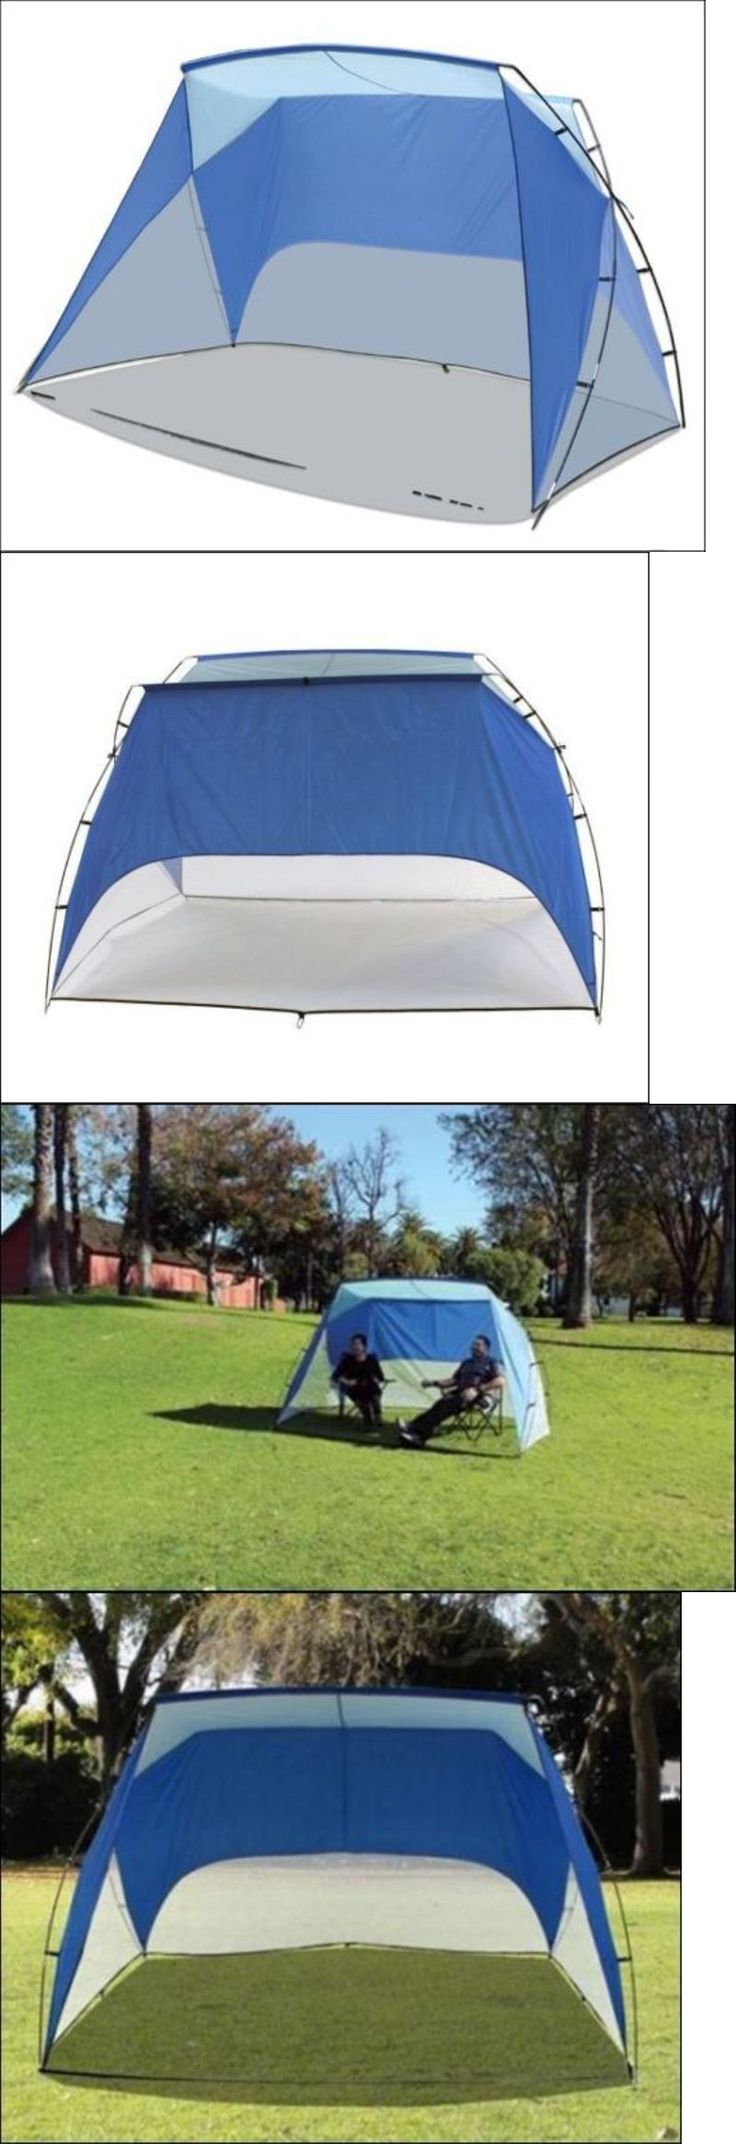 Canopies and Shelters 179011: Sun Shade Tent Beach Cabana Sports Umbrella Personal Sideline Portable Shelter -> BUY IT NOW ONLY: $38.39 on eBay!